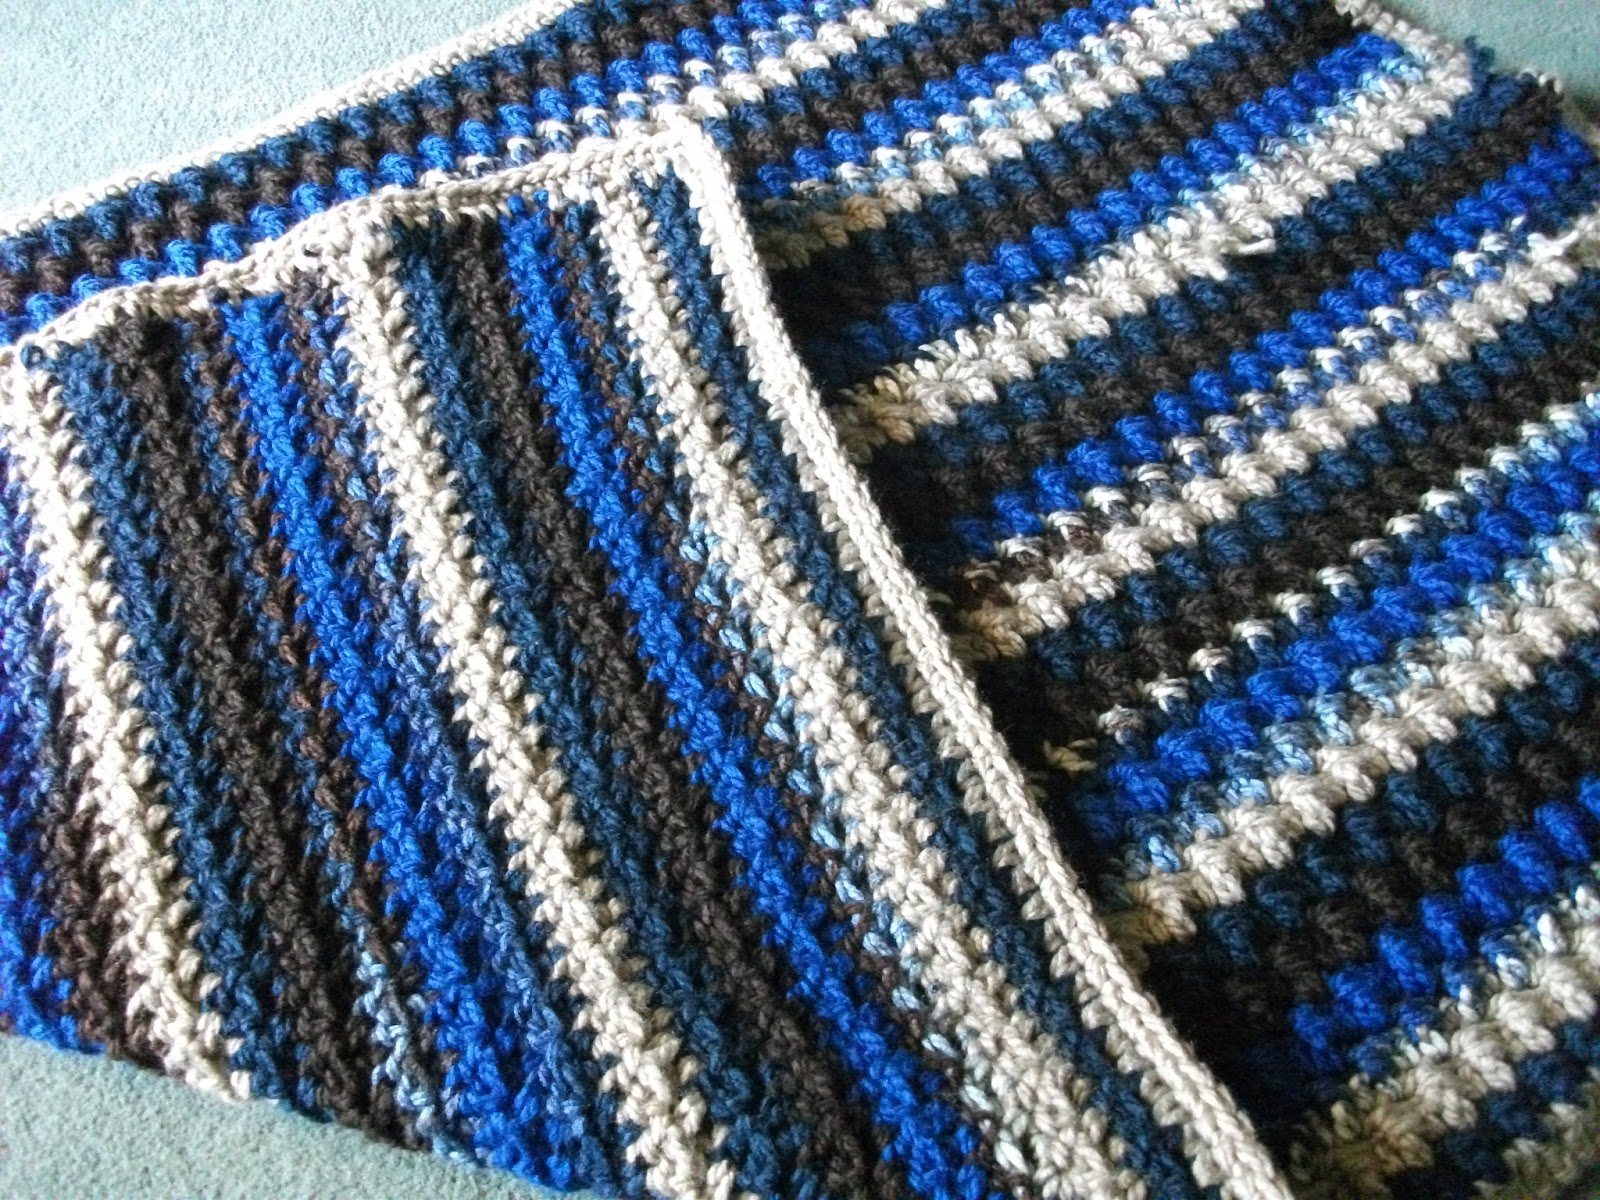 Crochet Stitches Instructions For Front-Post Double Crochet : YarnSkeink: Front Post Double Crochet Afghan